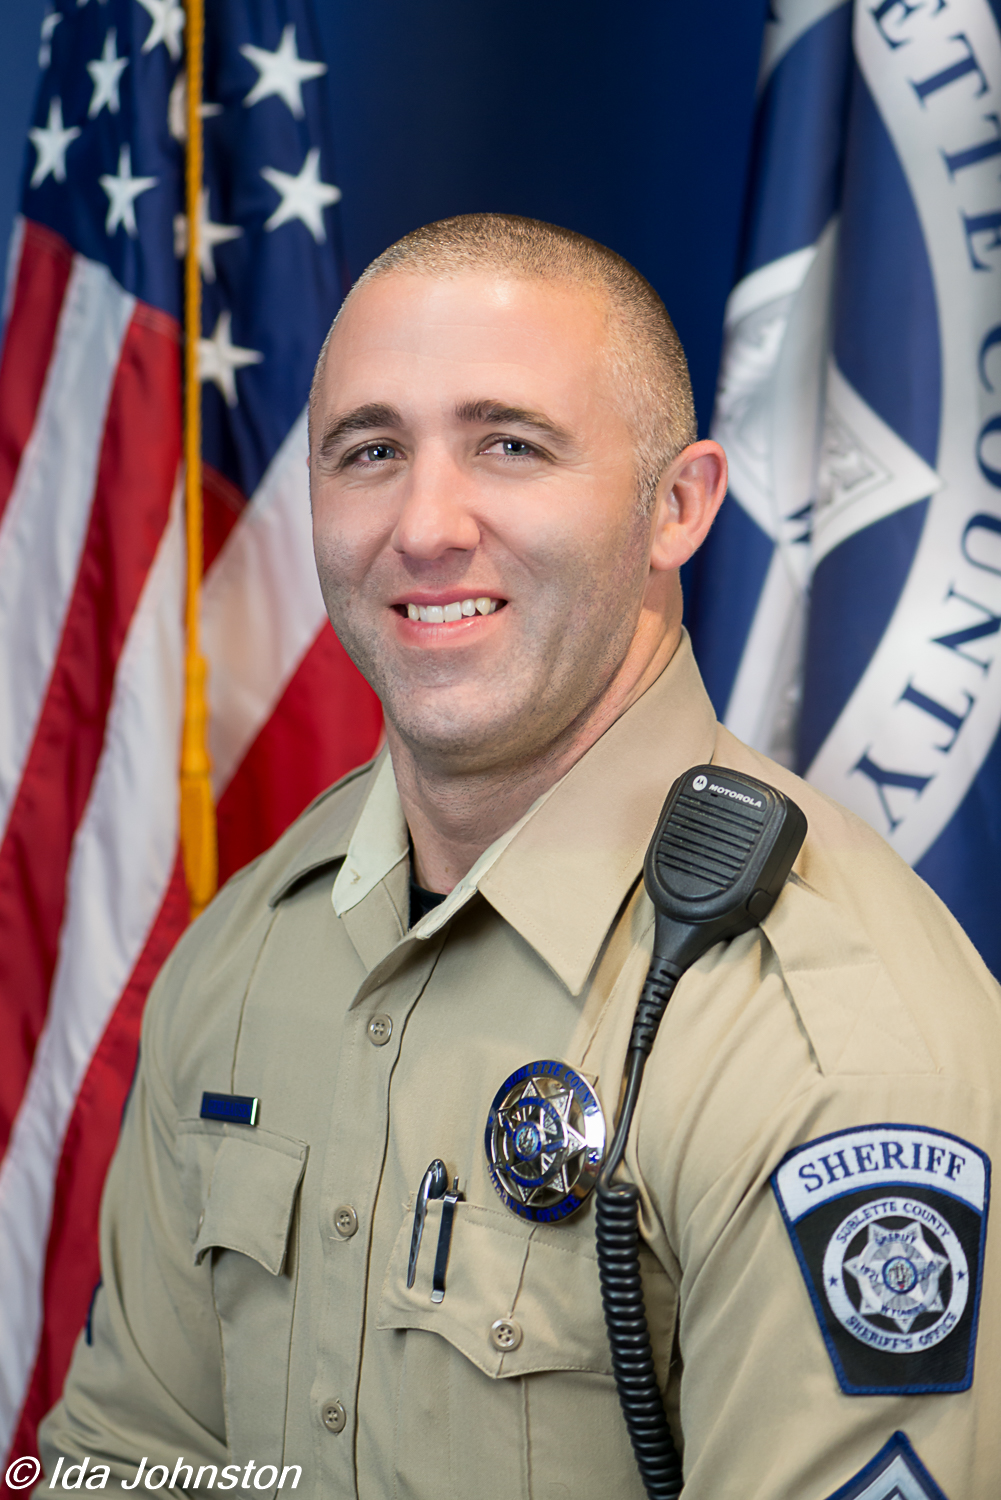 Deputy Logan Gehlhausen Retires after 15 years with the SCSO